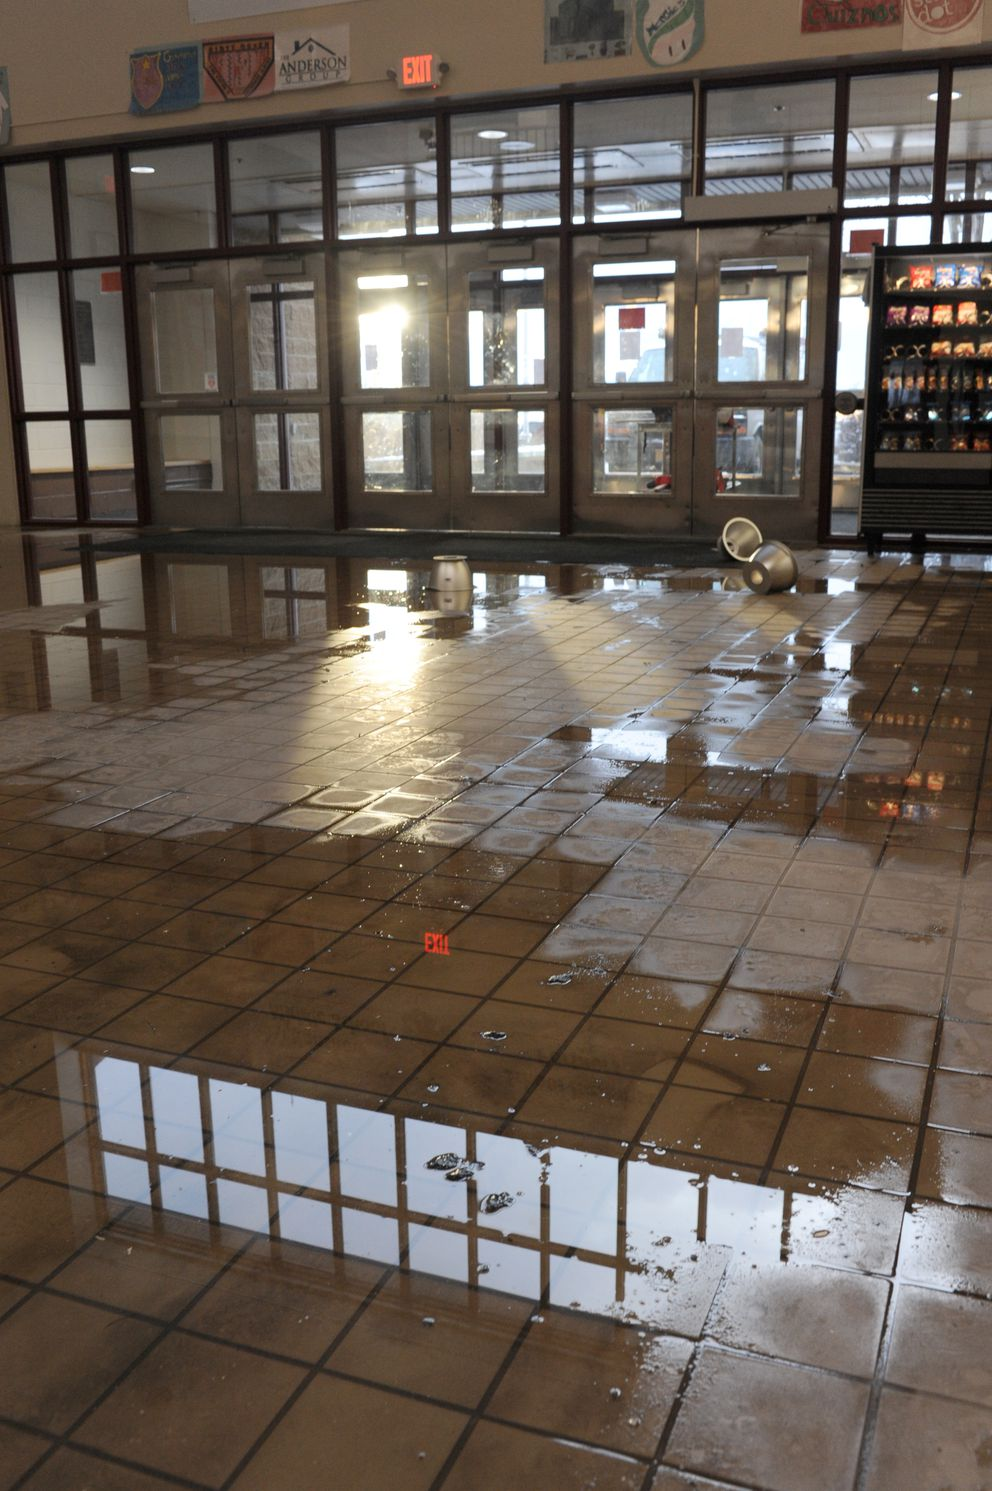 The entryway at Hanshew Middle School was heavily damaged by water and falling lights and other objects. (Anne Raup / ADN)